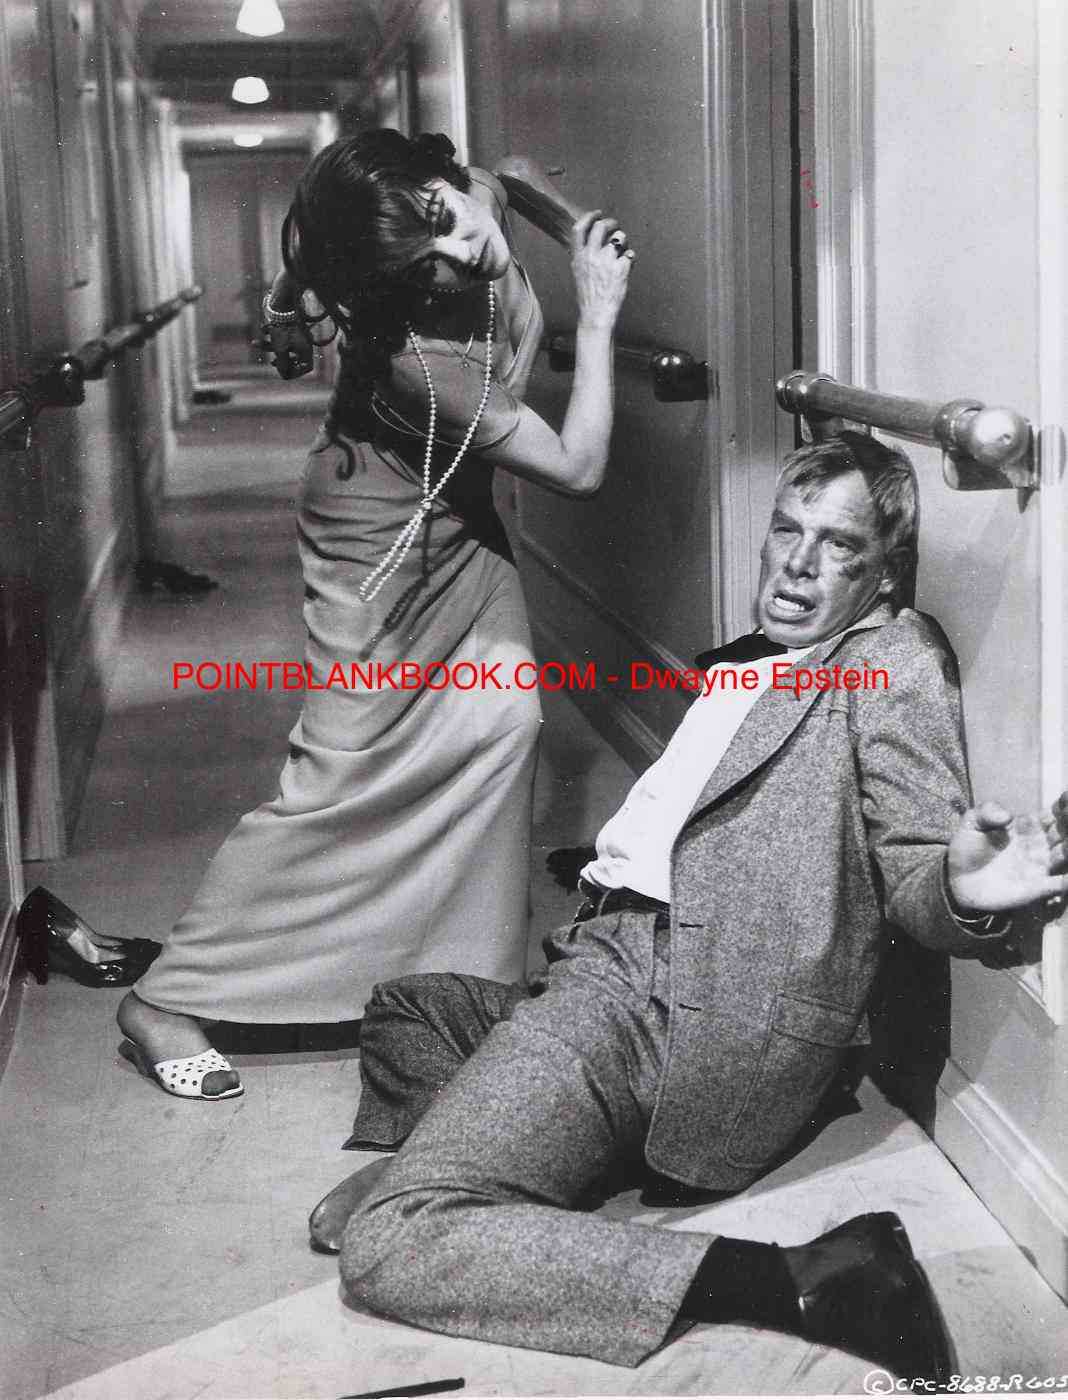 The climatic 'shoe fight' in SHIP OF FOOLS in which Vivien Leigh beats Lee Marvin for misaking her for a prostitute. Marvin kept the shoe as a treasured memento.